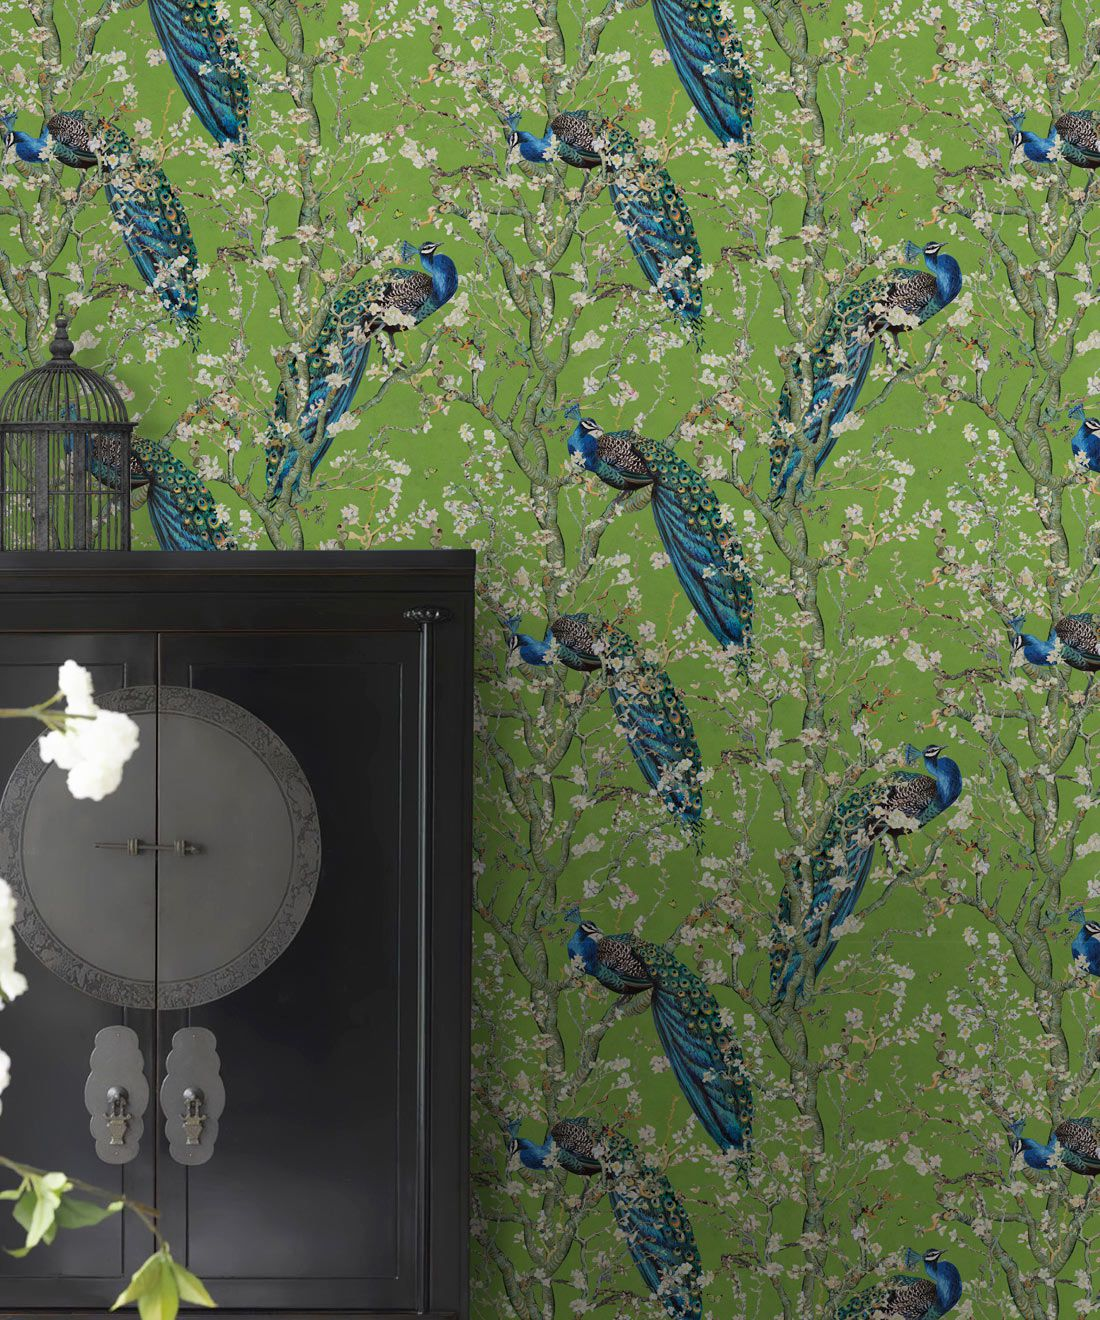 Almond Blossom Wallpaper • Chinoiserie Wallpaper • Wallpaper with Peacocks • Green Chartreause Wallpaper •Insitu